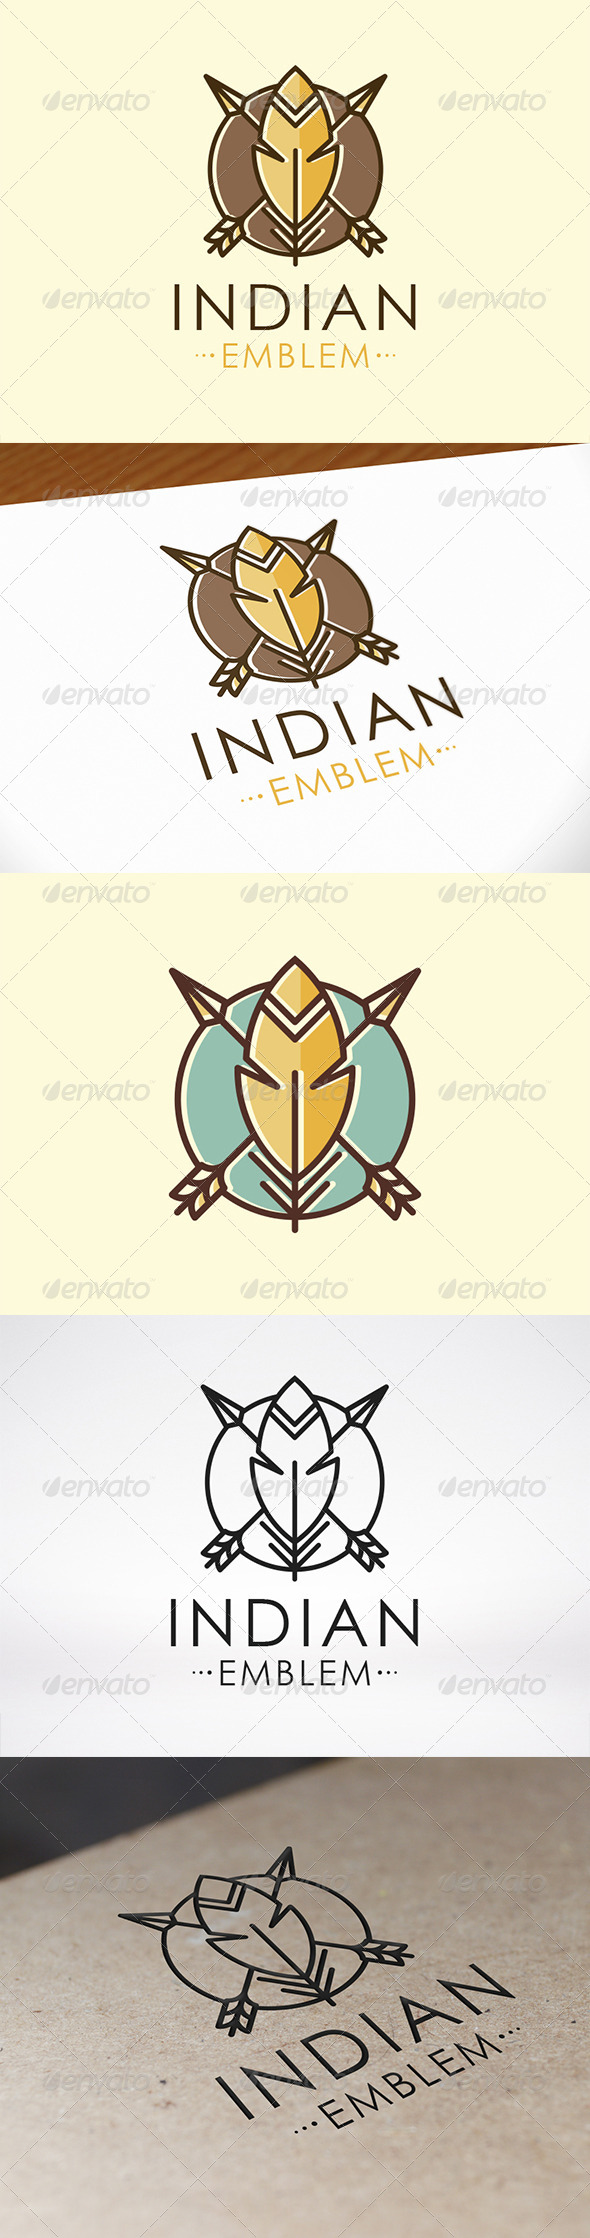 GraphicRiver Indian Emblem Logo Template 7308413